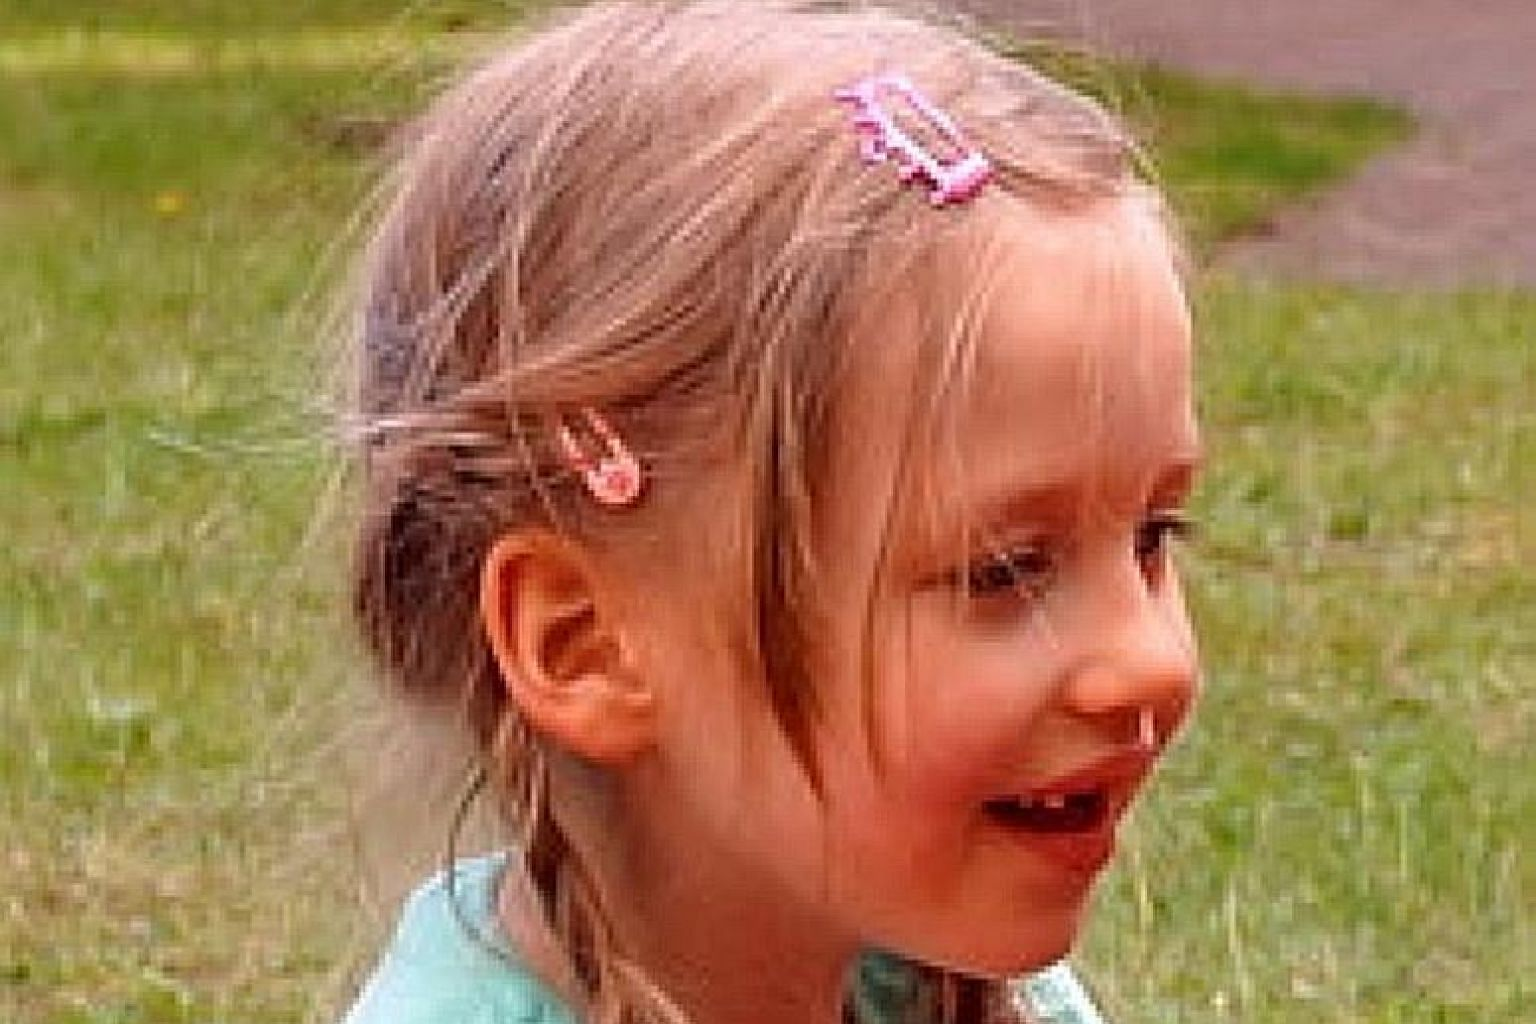 Police believe five-year-old Inga's (far left) disappearance in 2015 could be linked to a German named as Christian B. (left), suspected of murdering Madeleine McCann in 2007. Madeleine's parents (below) mounted a global manhunt when she went missing